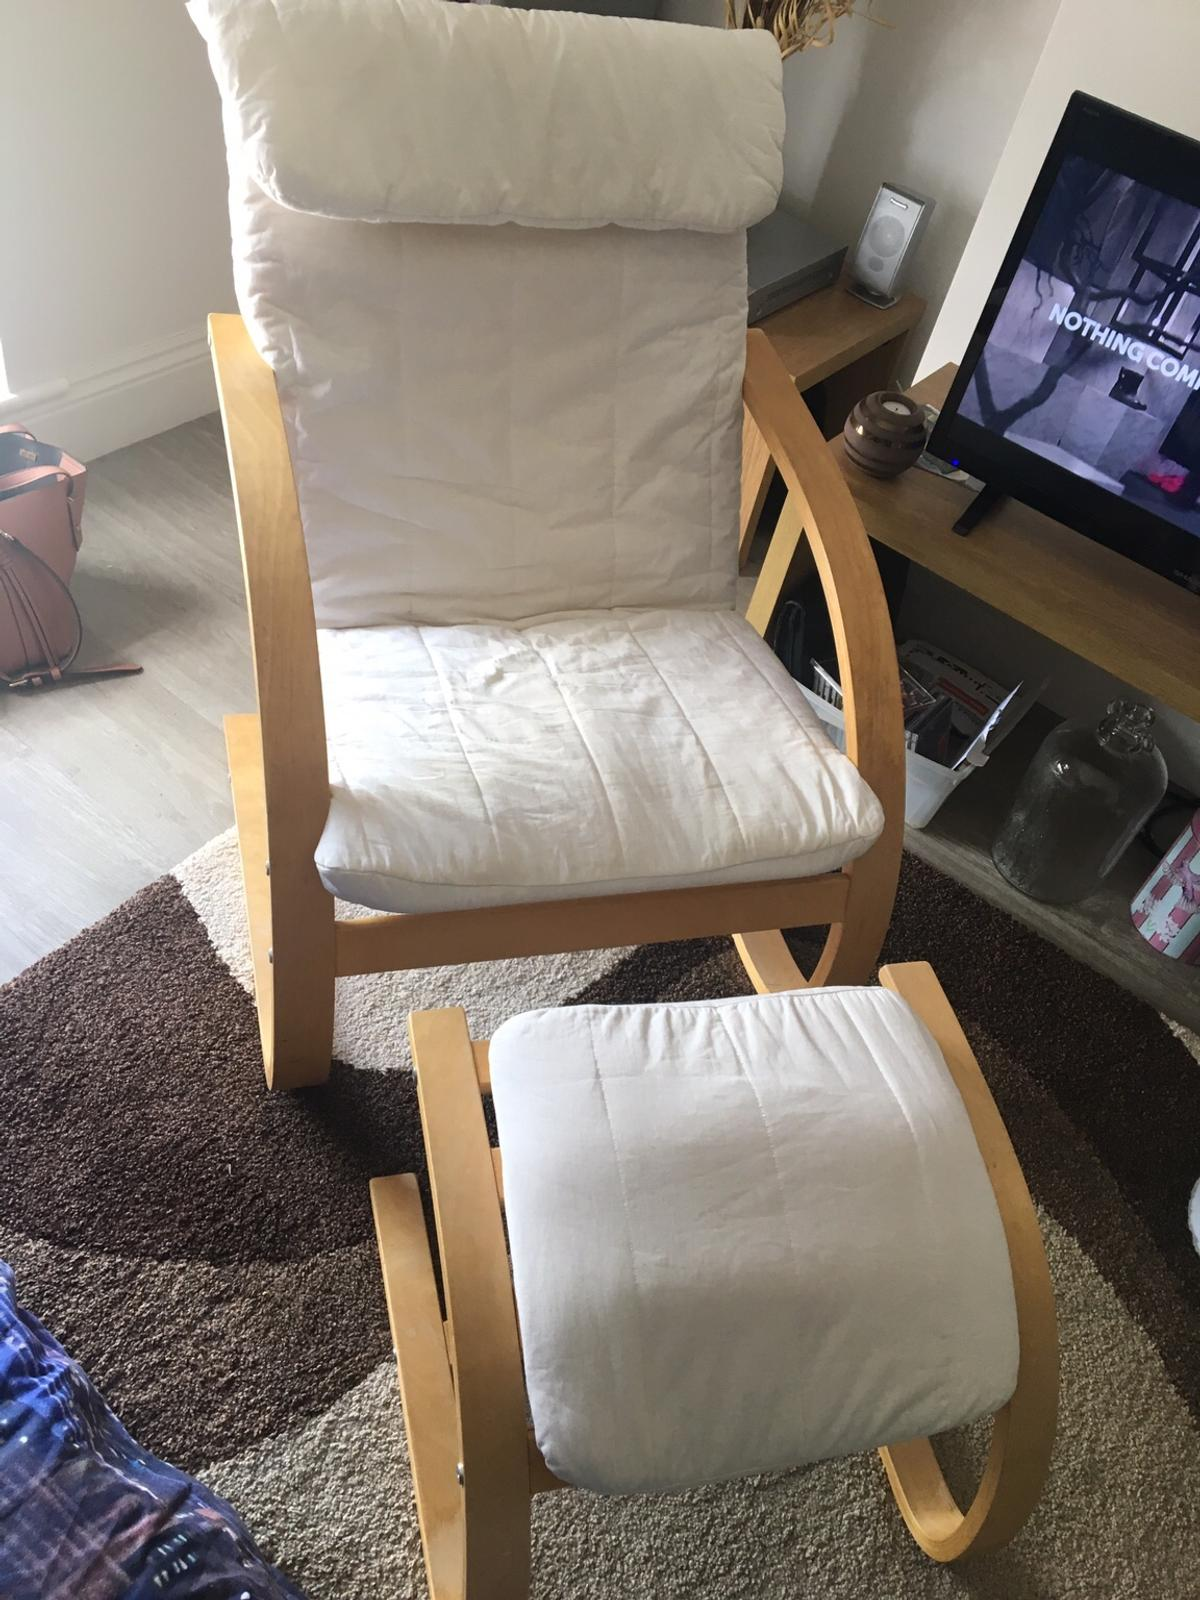 Prime Ikea Poang Chair And Footstool In Wigan For 15 00 For Sale Machost Co Dining Chair Design Ideas Machostcouk